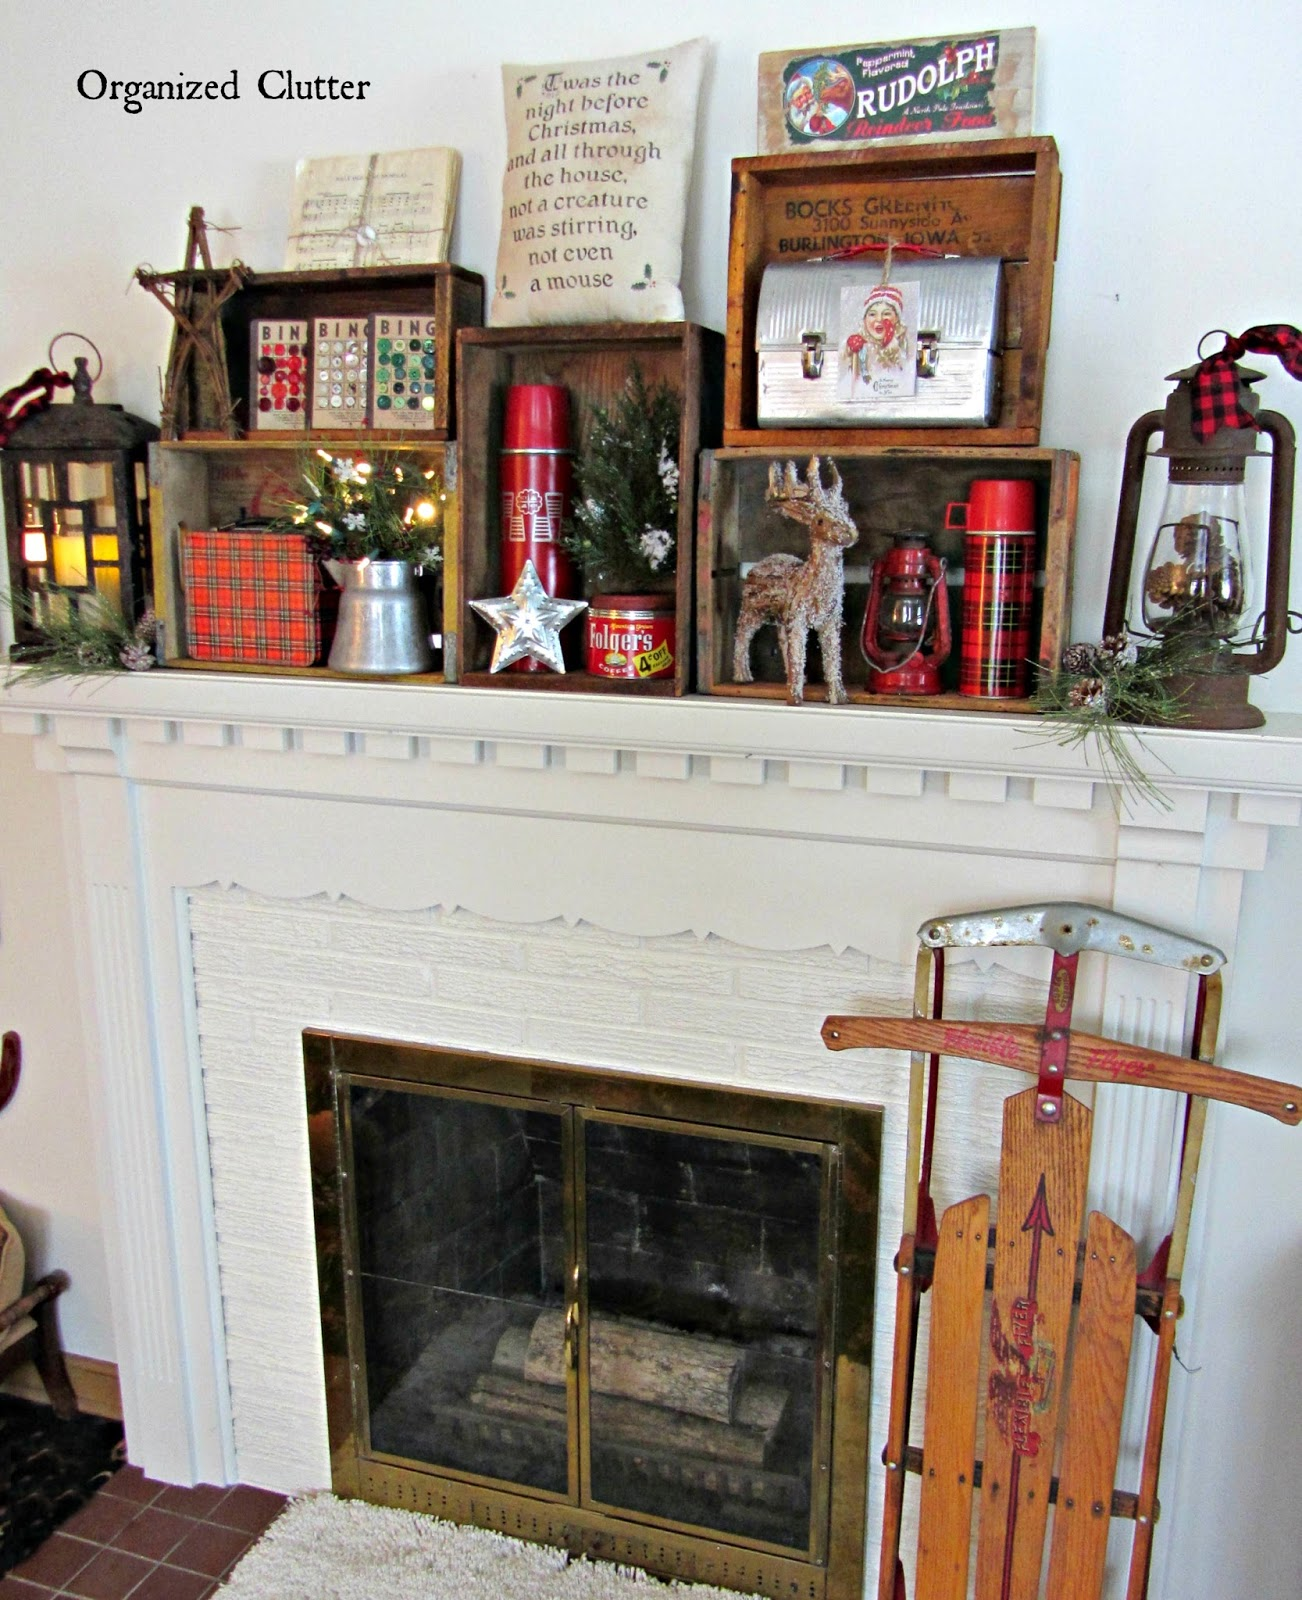 An Organized Cluttered Rustic Crate Christmas Mantel